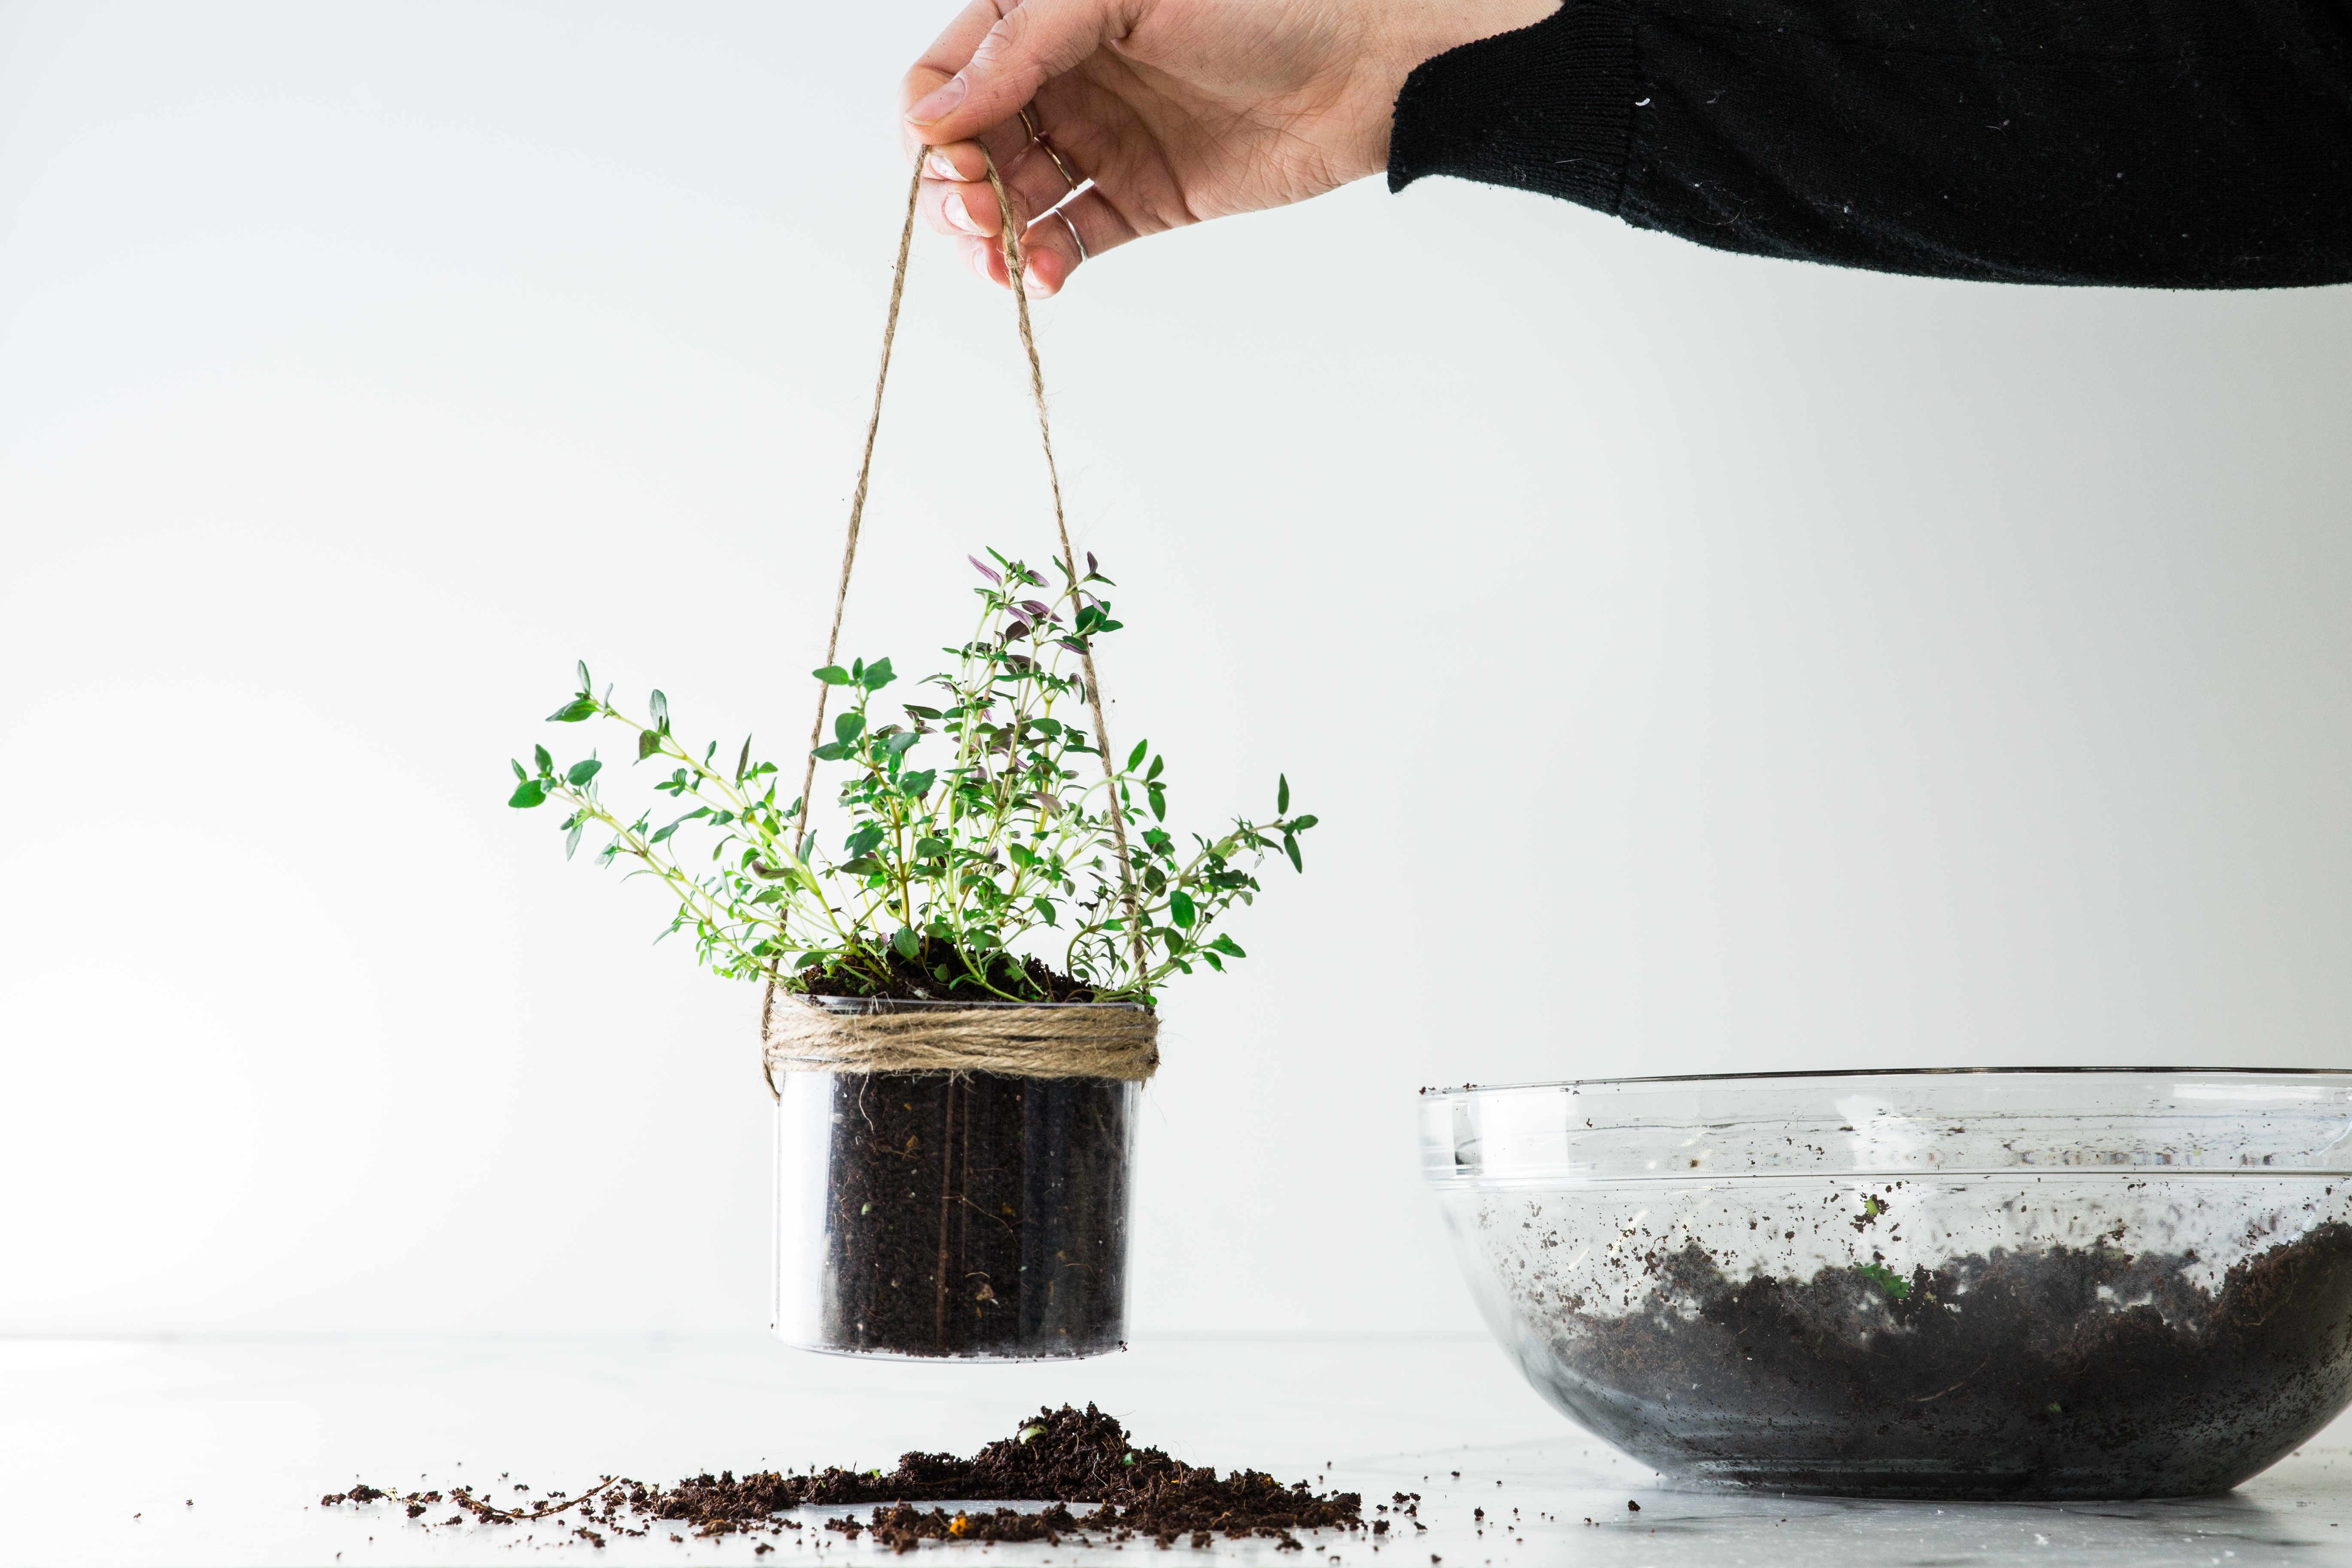 upcycle your meal kit packaging - terrarium